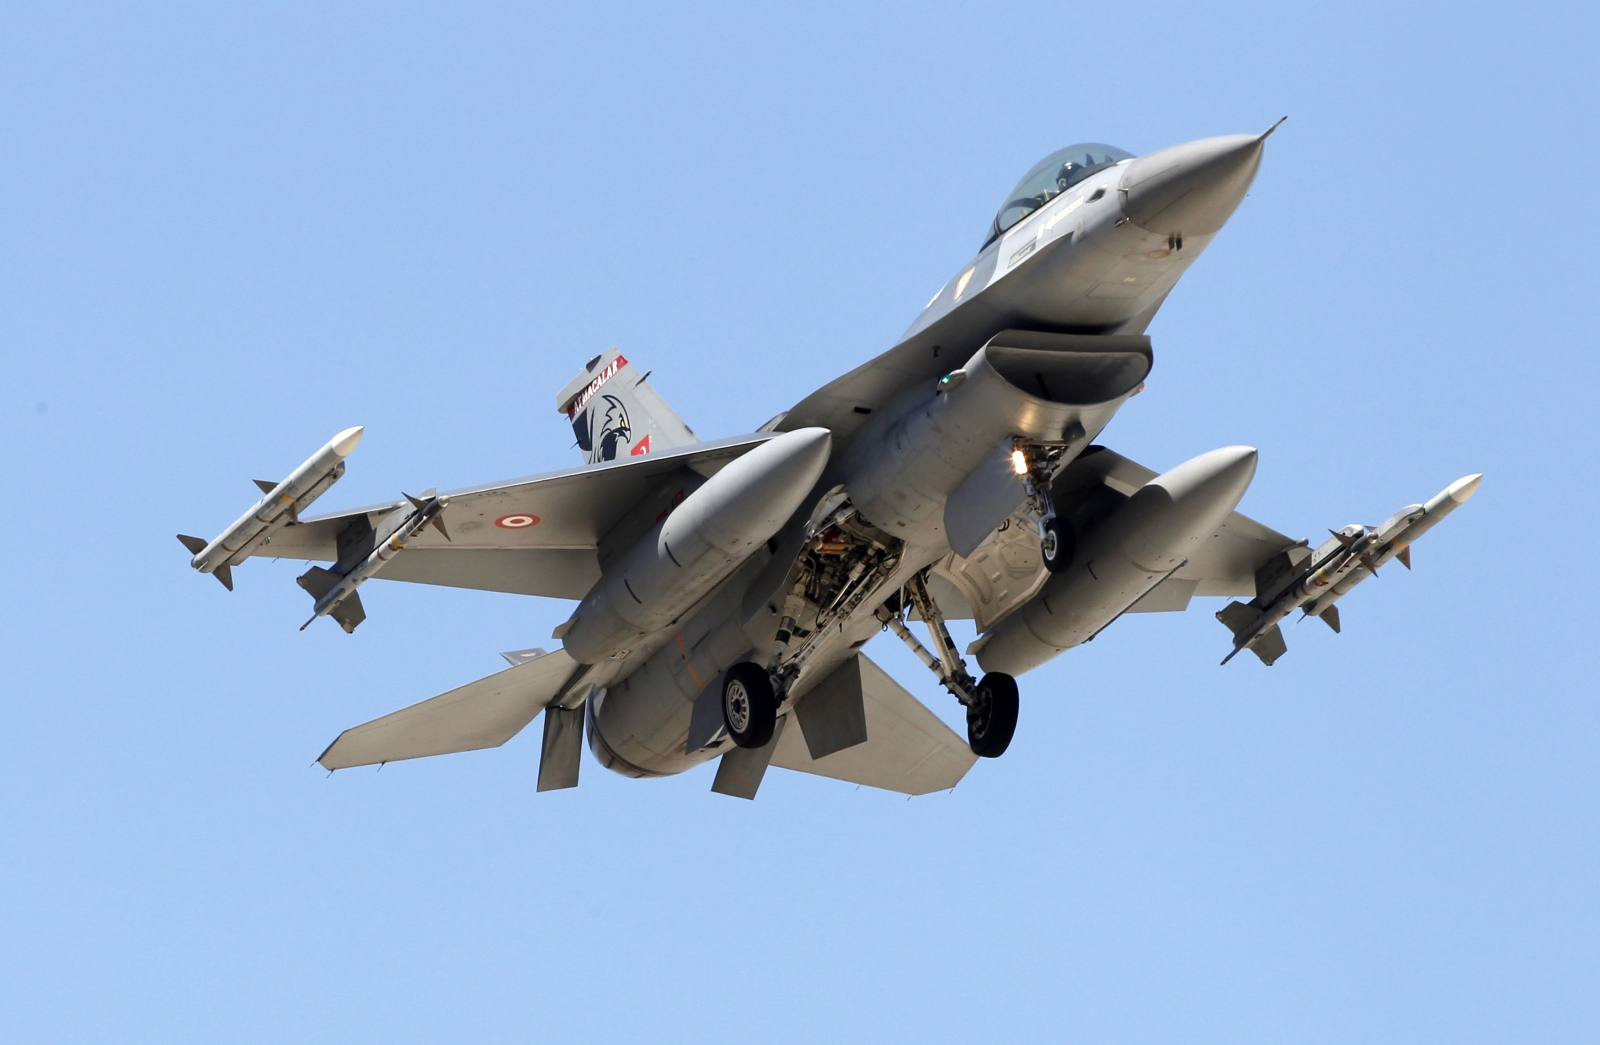 Turkey air force F-16 jet